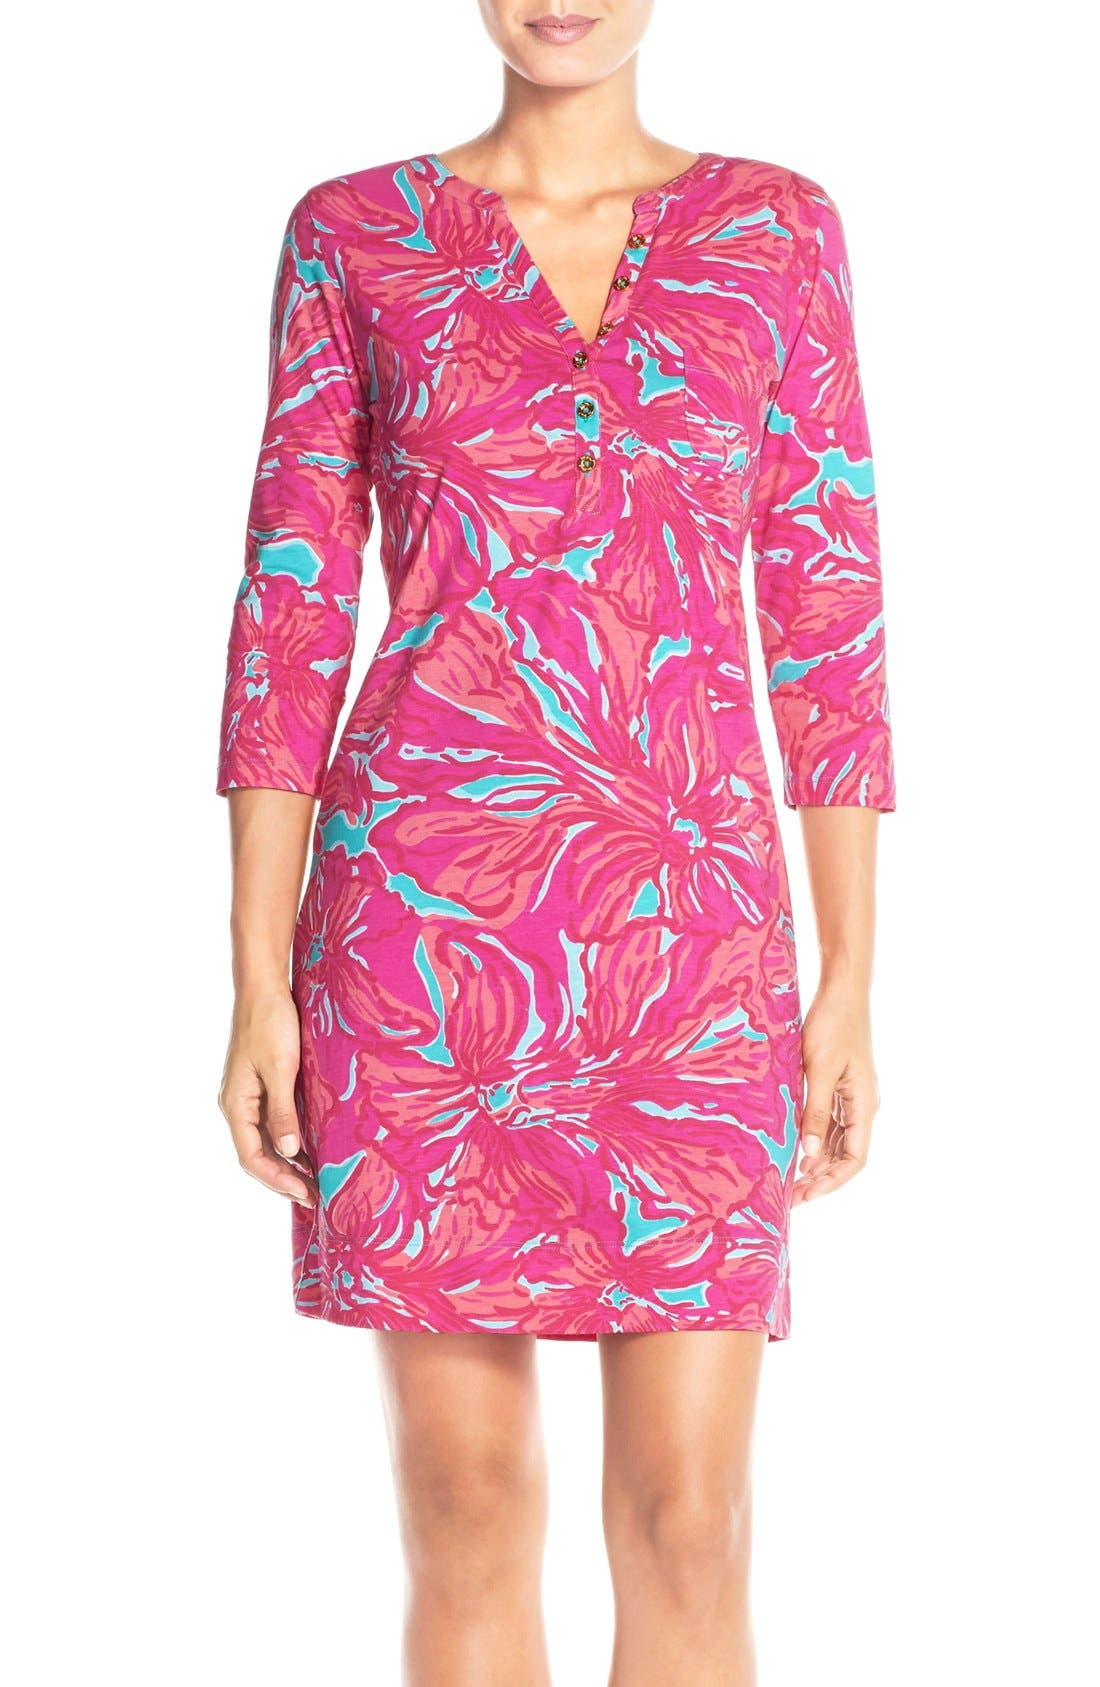 Alternate Image 1 Selected - Lilly Pulitzer® 'Alessia' Print Pima Cotton T-Shirt Dress (Nordstrom Exclusive)